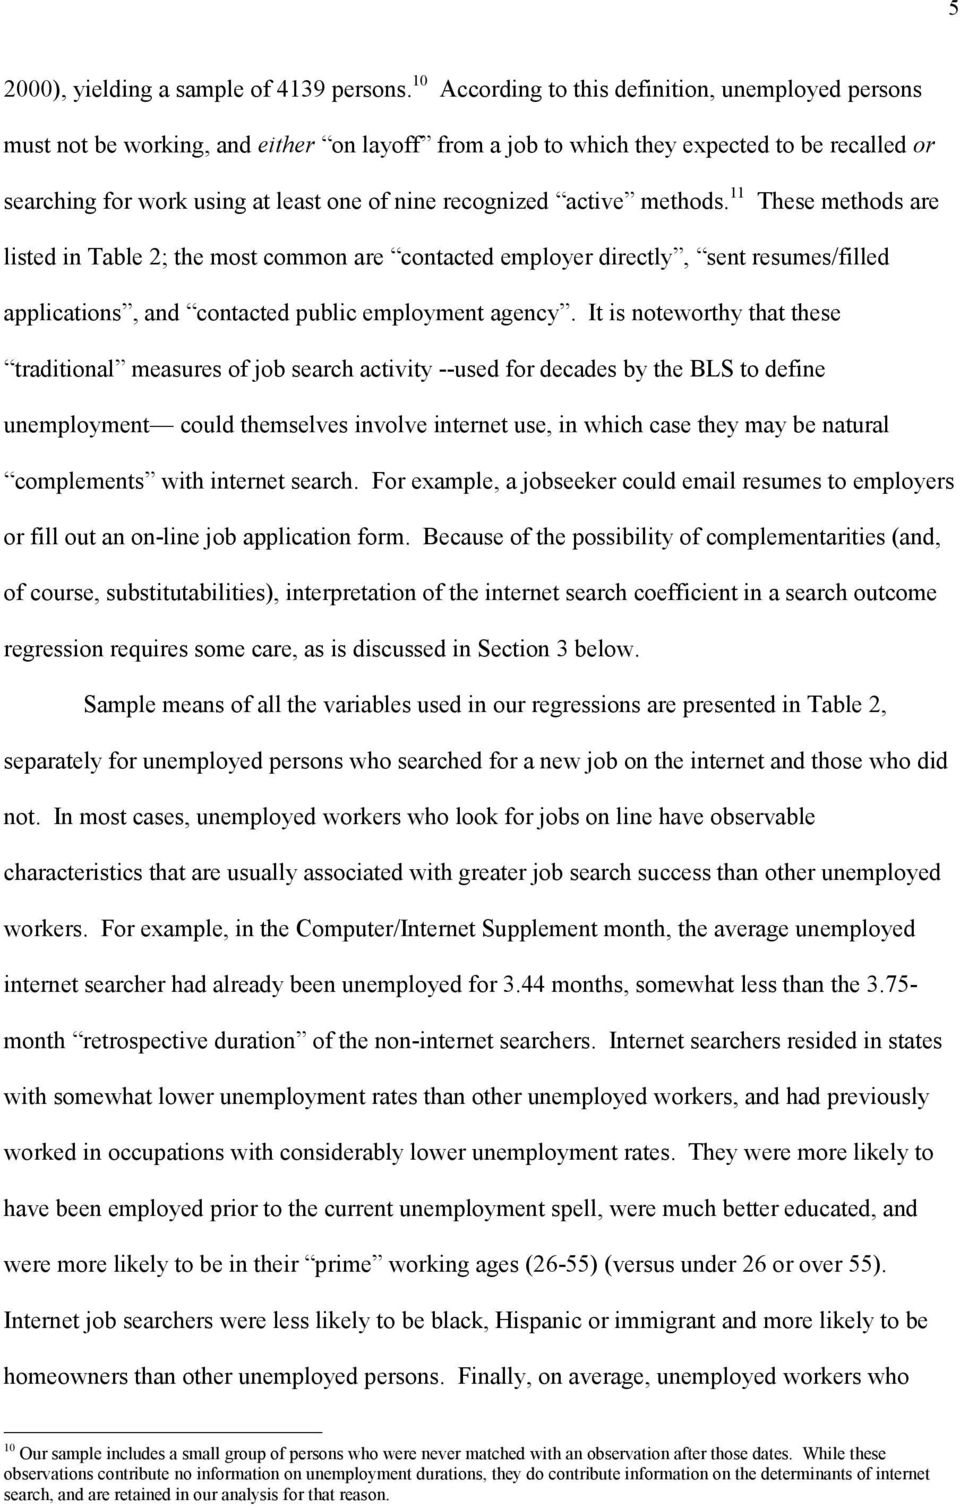 Internet Job Search And Unemployment Durations Pdf